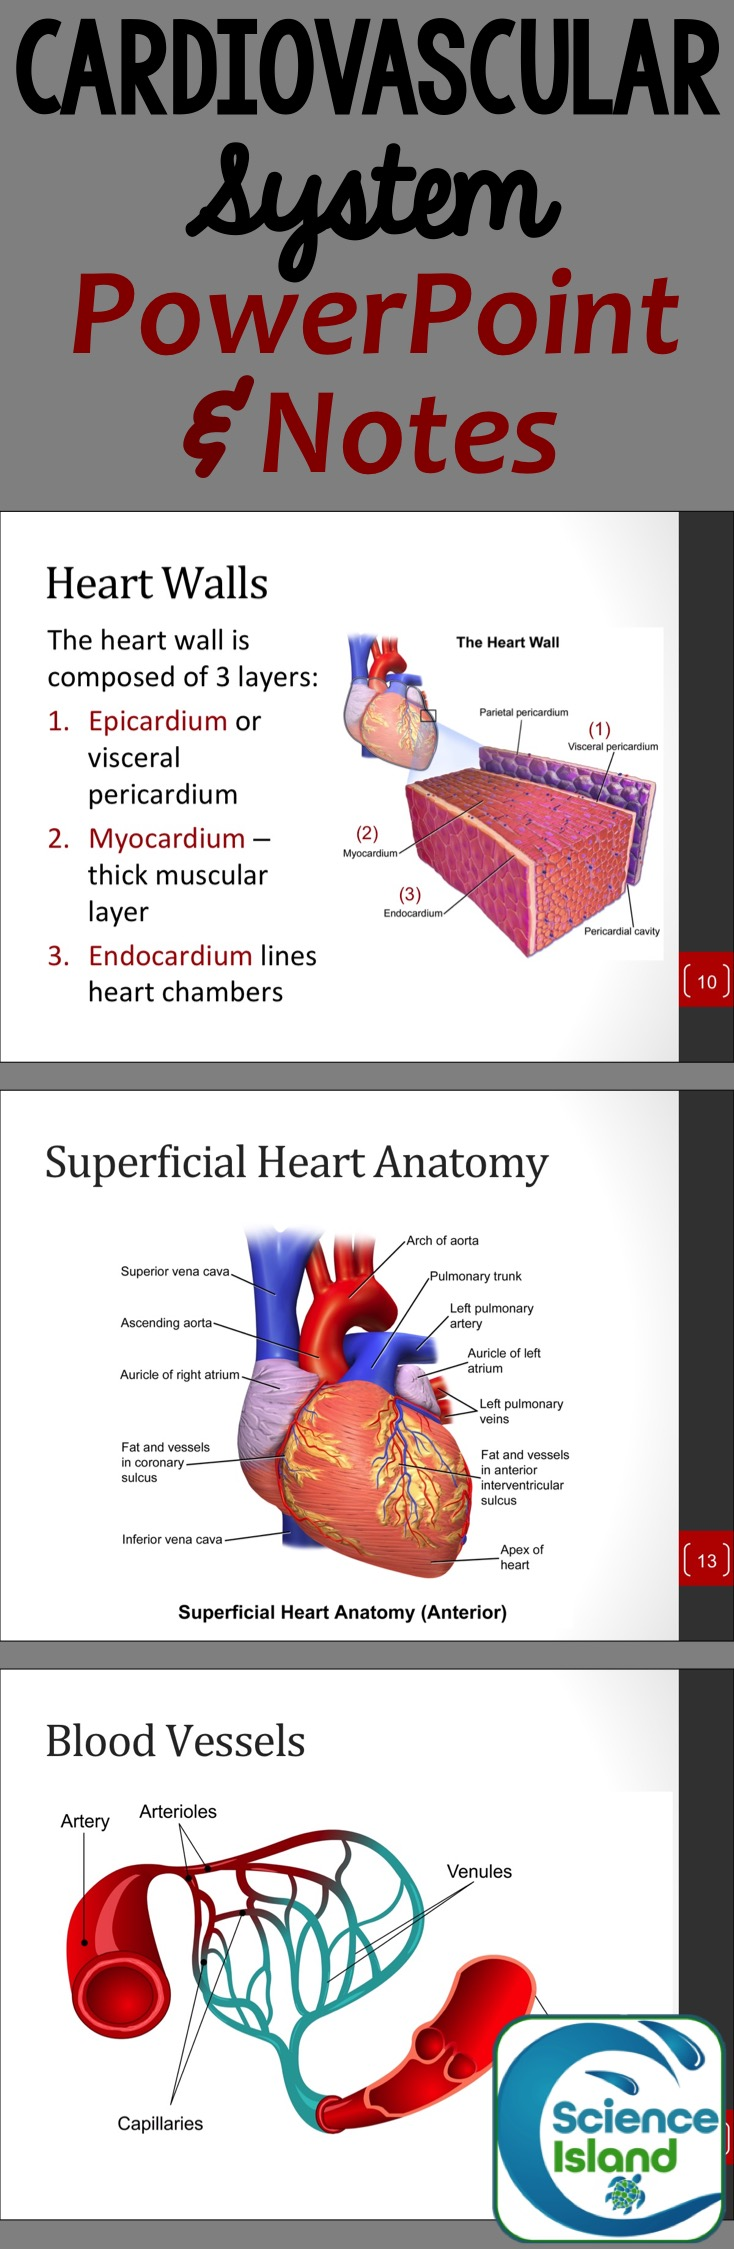 Cardiovascular System PowerPoint and Notes | Pinterest | Textbook ...